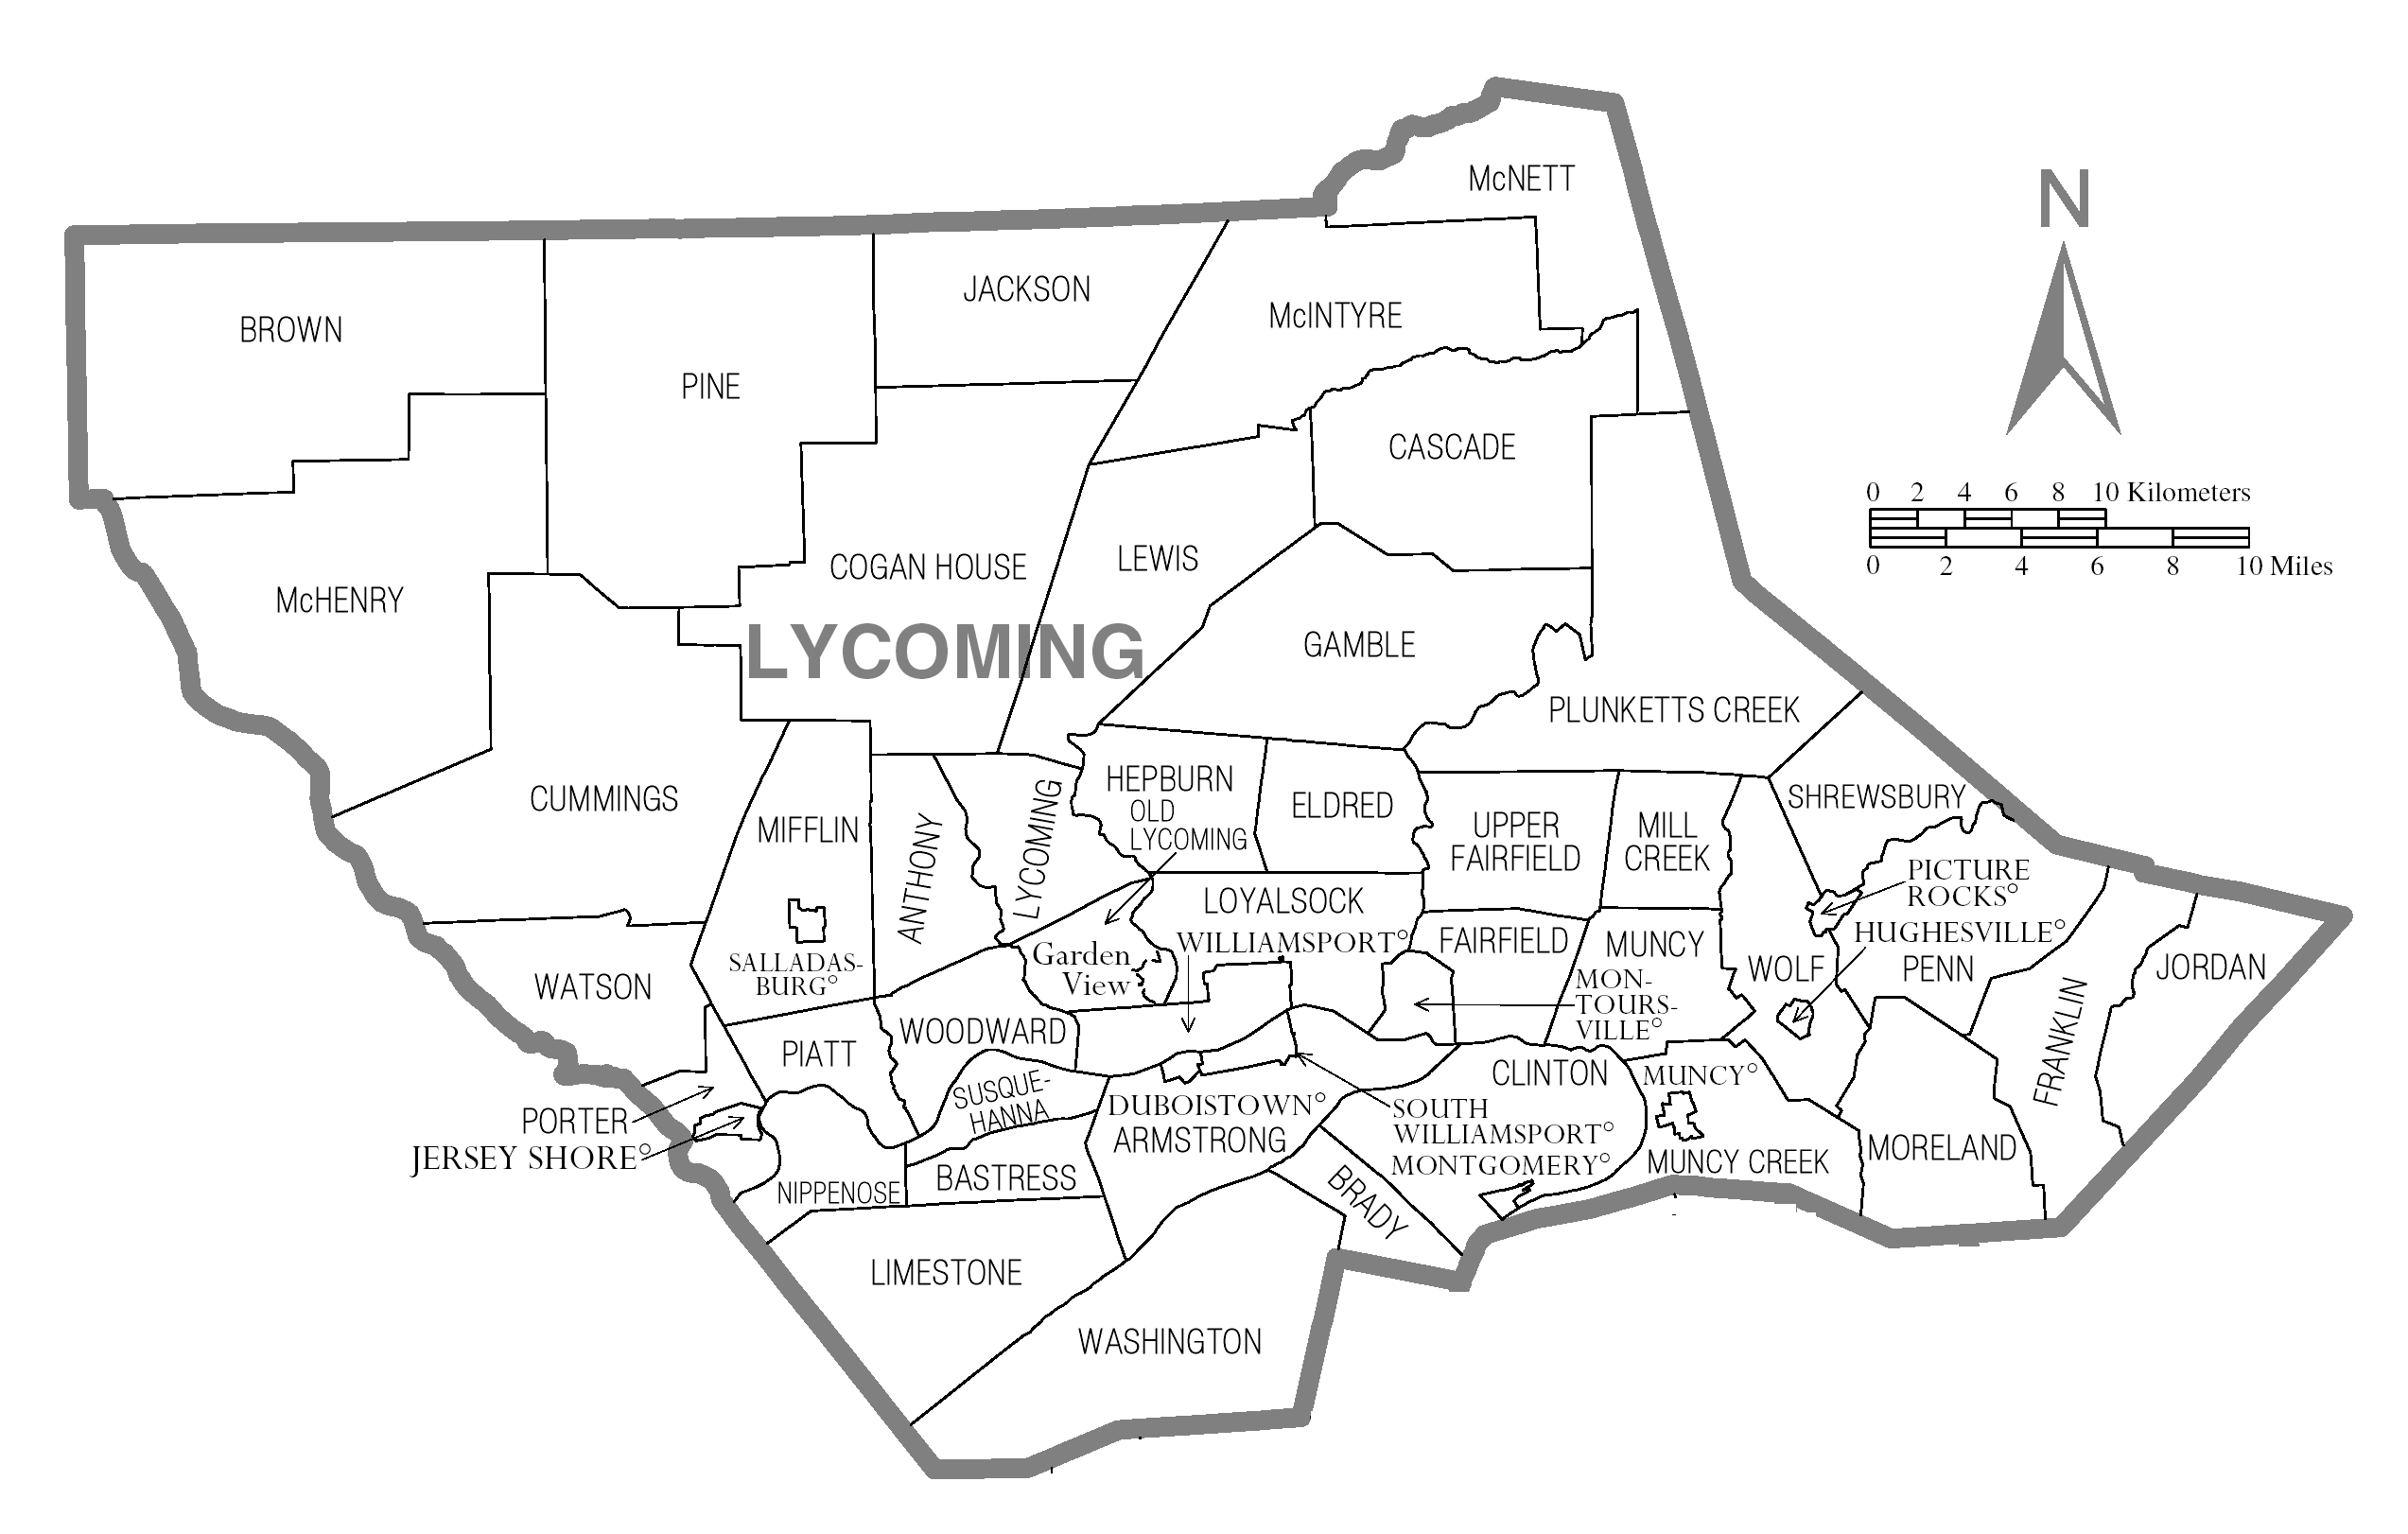 File:Map of Lycoming County, Pennsylvania.png - Wikimedia Commons on little pine state park pa map, salladasburg pa map, montour county pa map, golden eagle trail pa map, cumberland county pa map, fairfield township pa map, pennsylvania county map, bucks co pa map, northumberland county pa map, red land pa map, sullivan county pa map, schuylkill river pa map, alleghany county pa map, hillsgrove pa map, knox county pa map, porter township pa map, chester co pa map, gray pa map, kinzua dam pa map, elk county pa map,